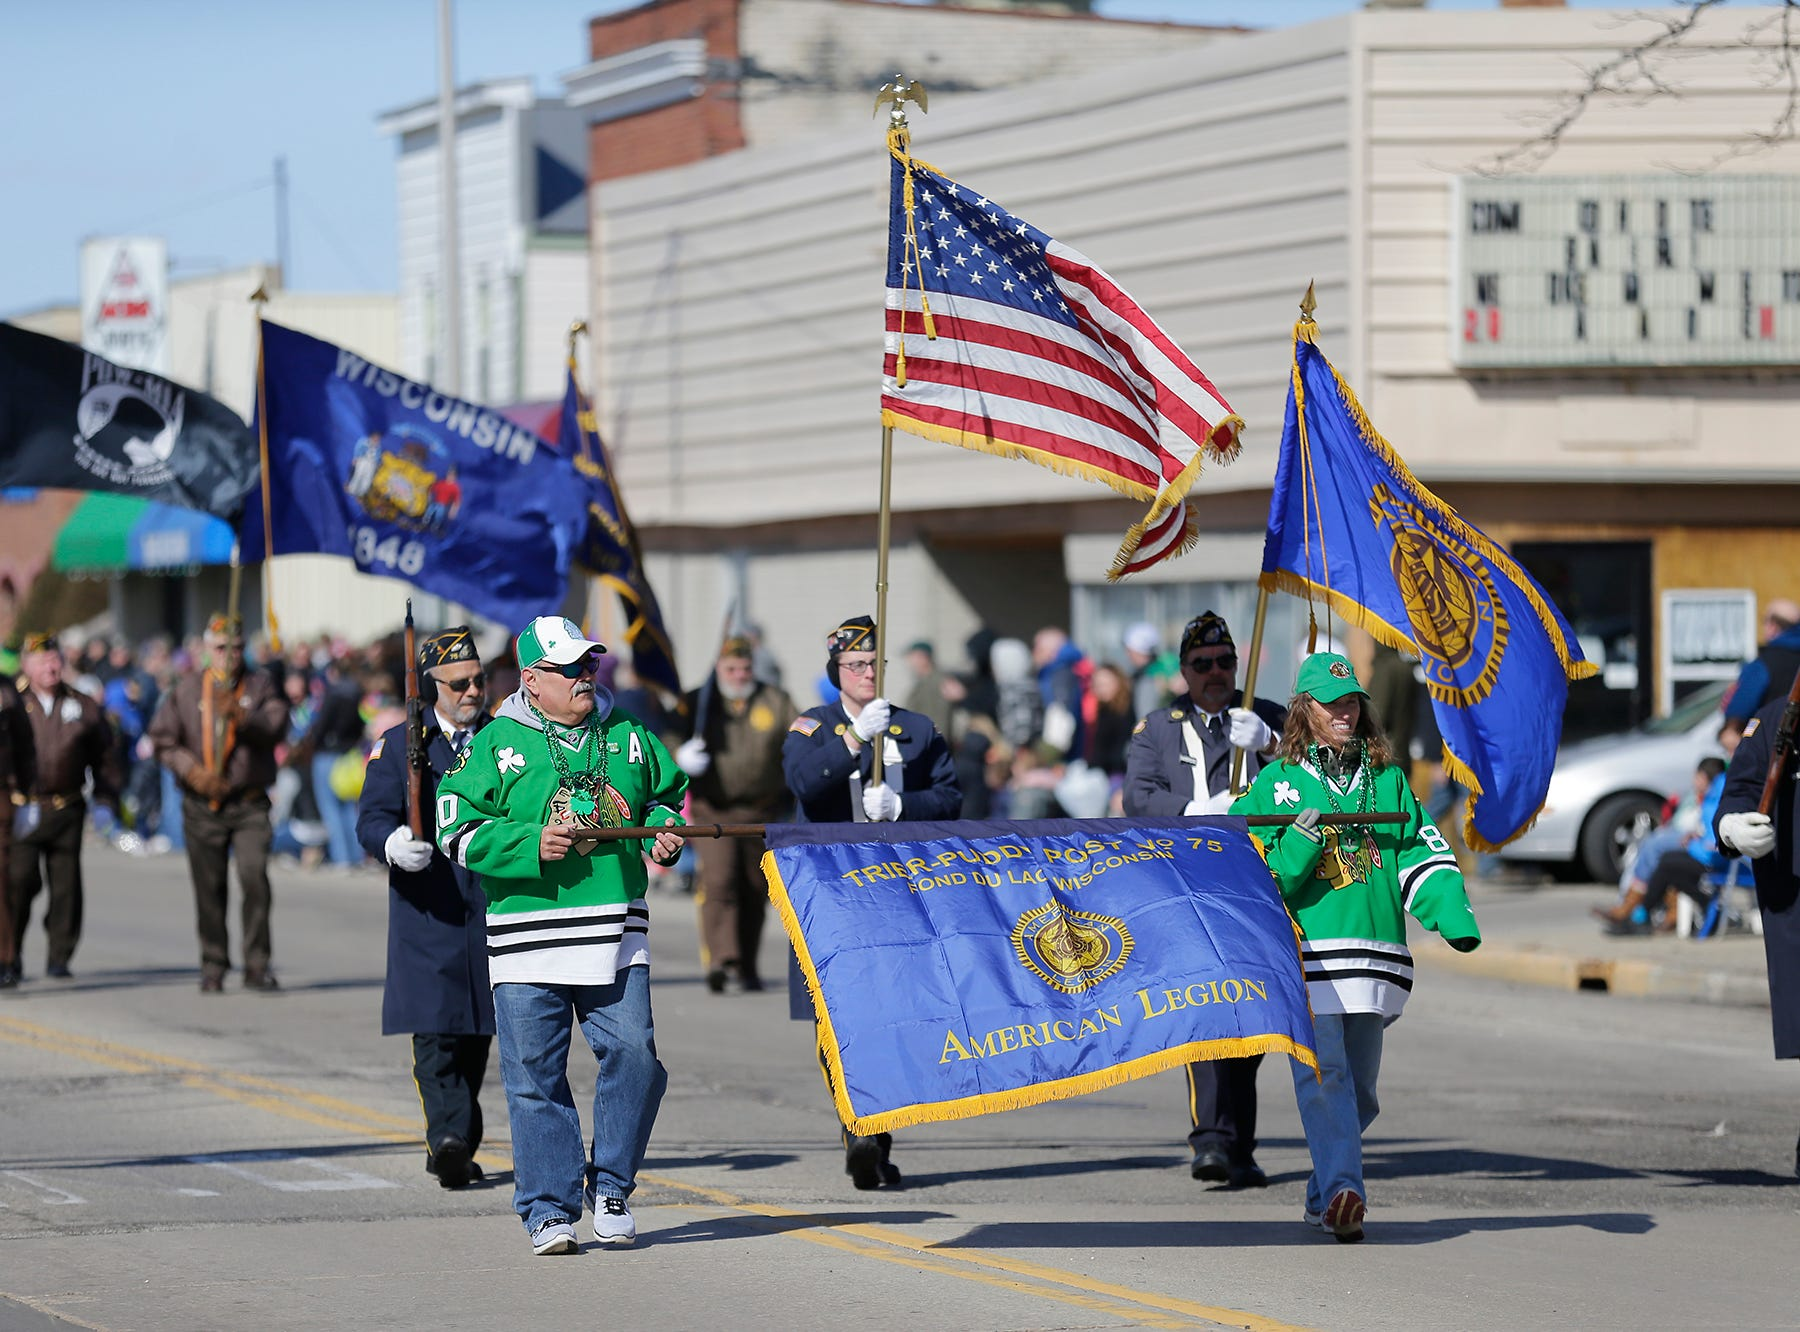 Hundreds of people lined the street Saturday; March 16, 2019 on Main Street in downtown Fond du Lac to watch the City of Fond du Lac St. Patrick's Day Parade .; Doug Raflik/USA TODAY NETWORK-Wisconsin